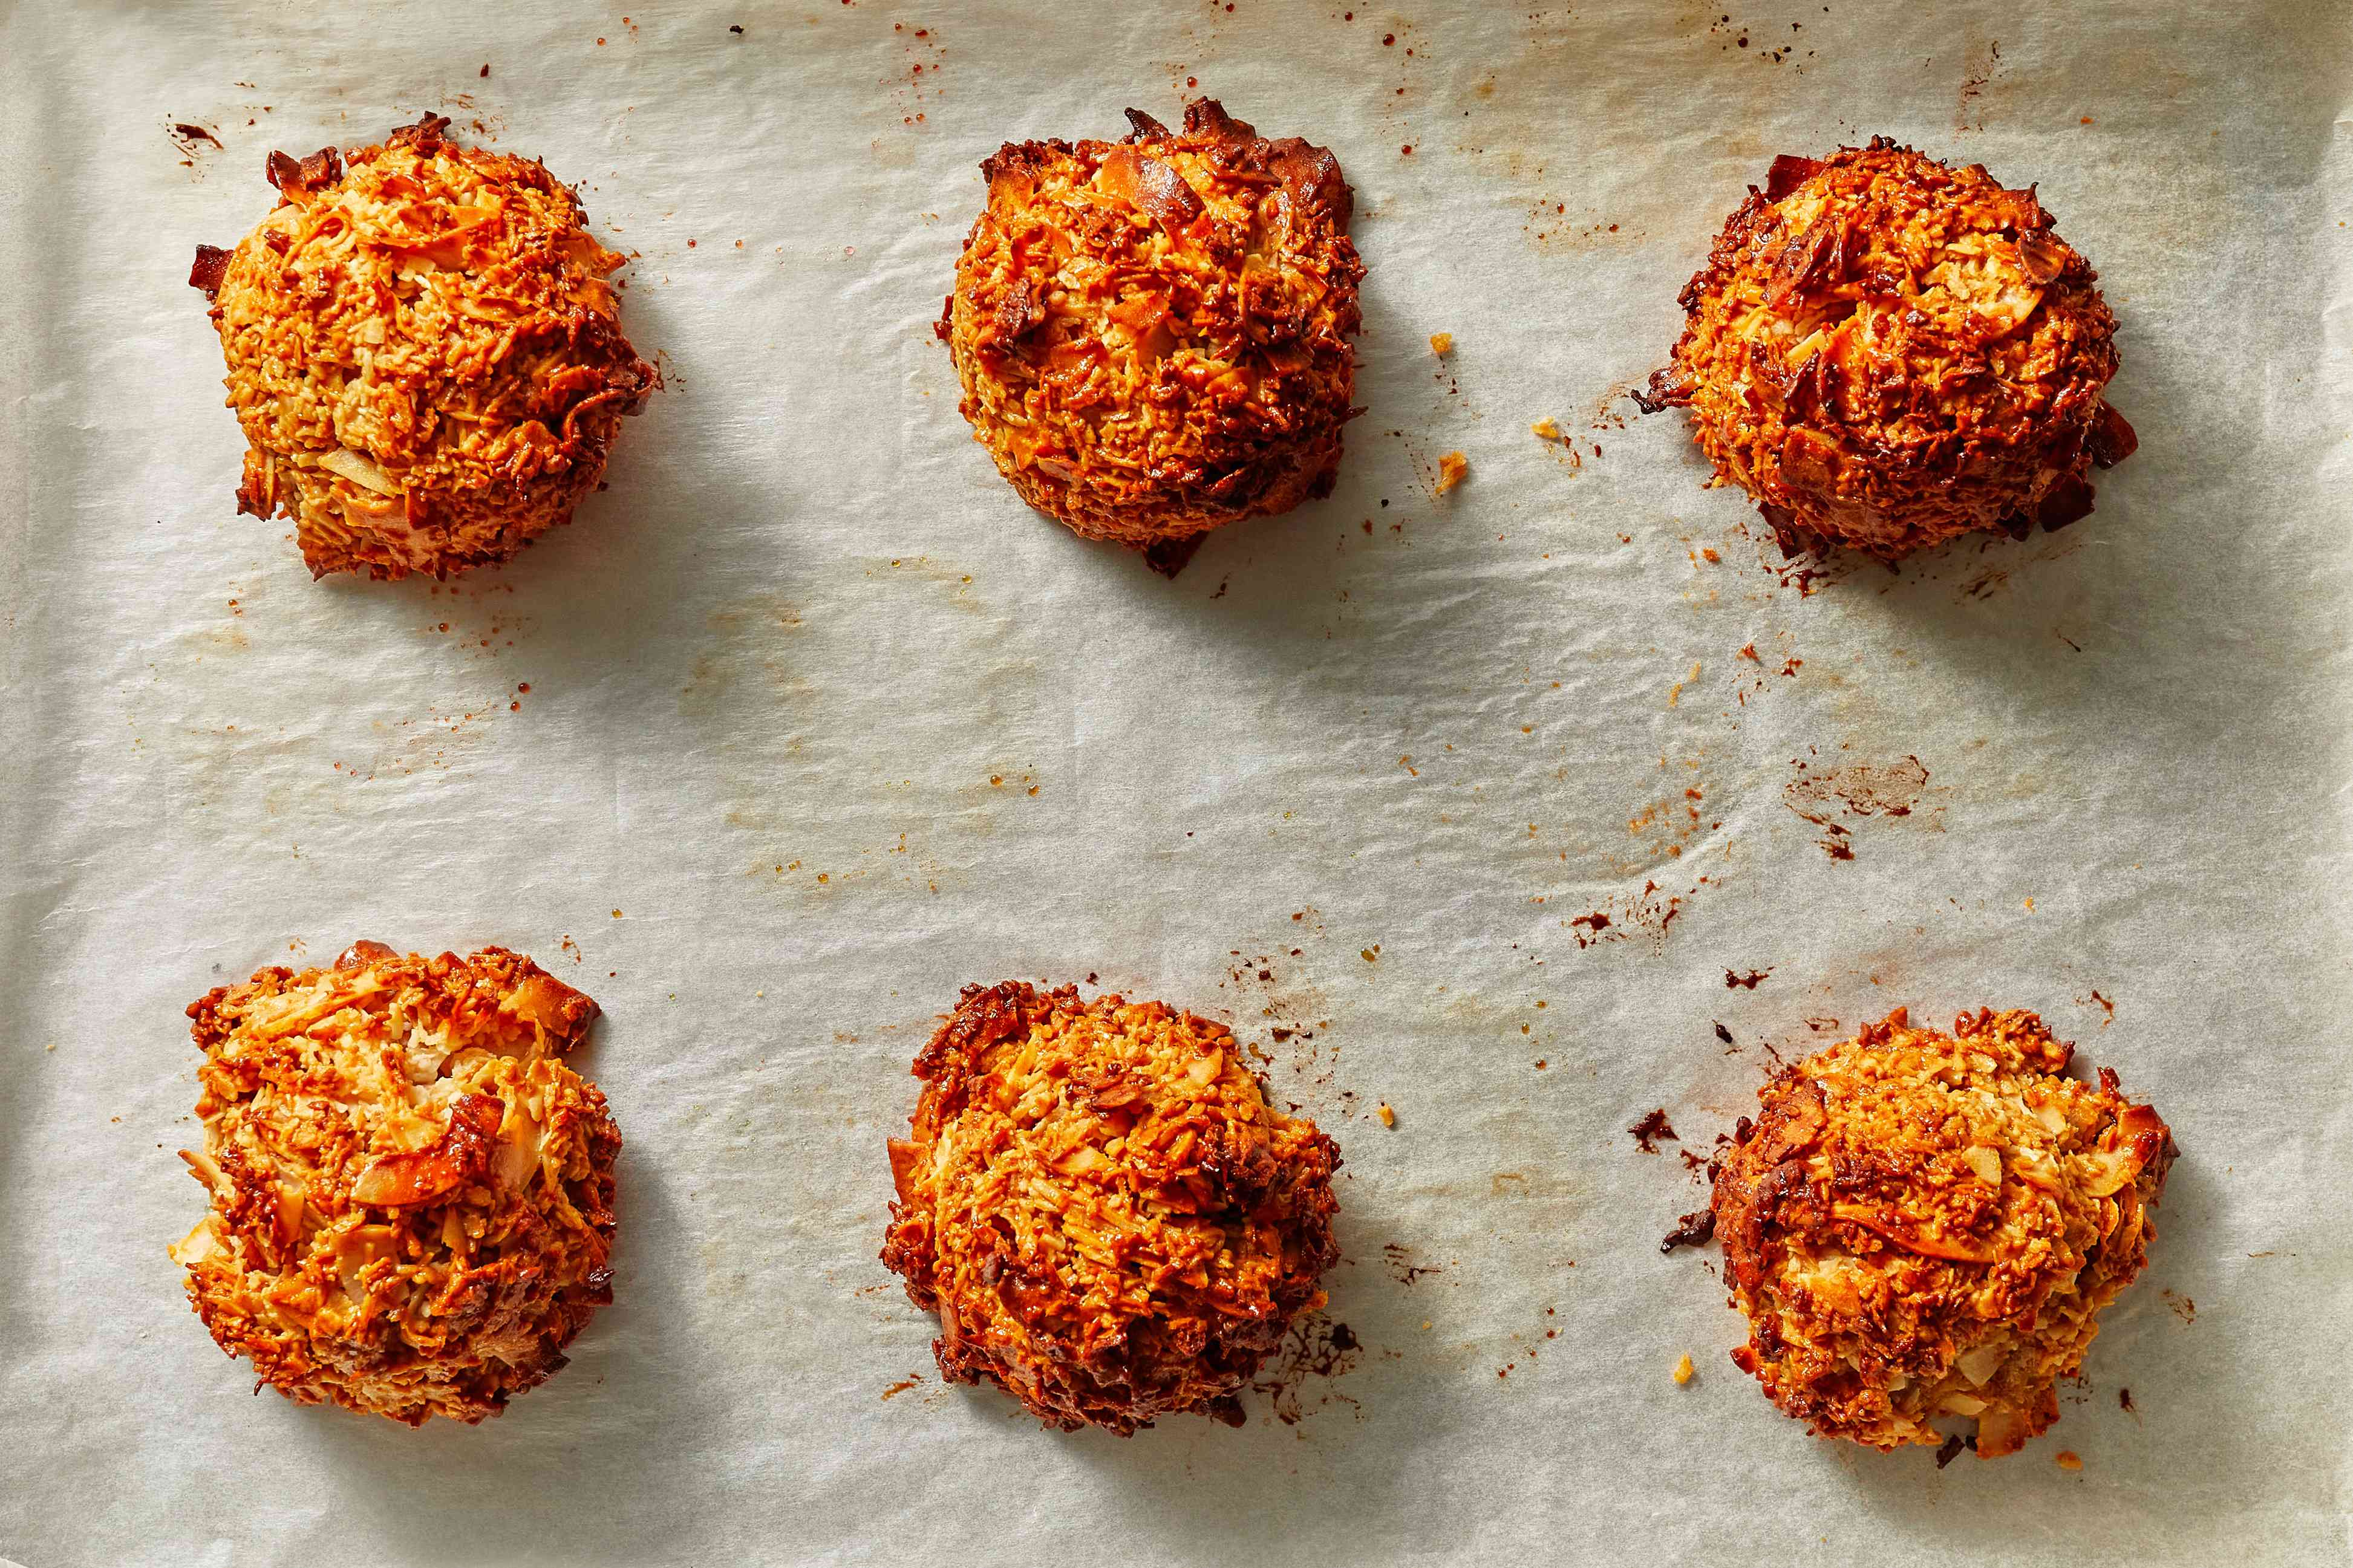 Cocadas - Coconut Macaroons With Dulce de Leche and Chocolate on a baking sheet